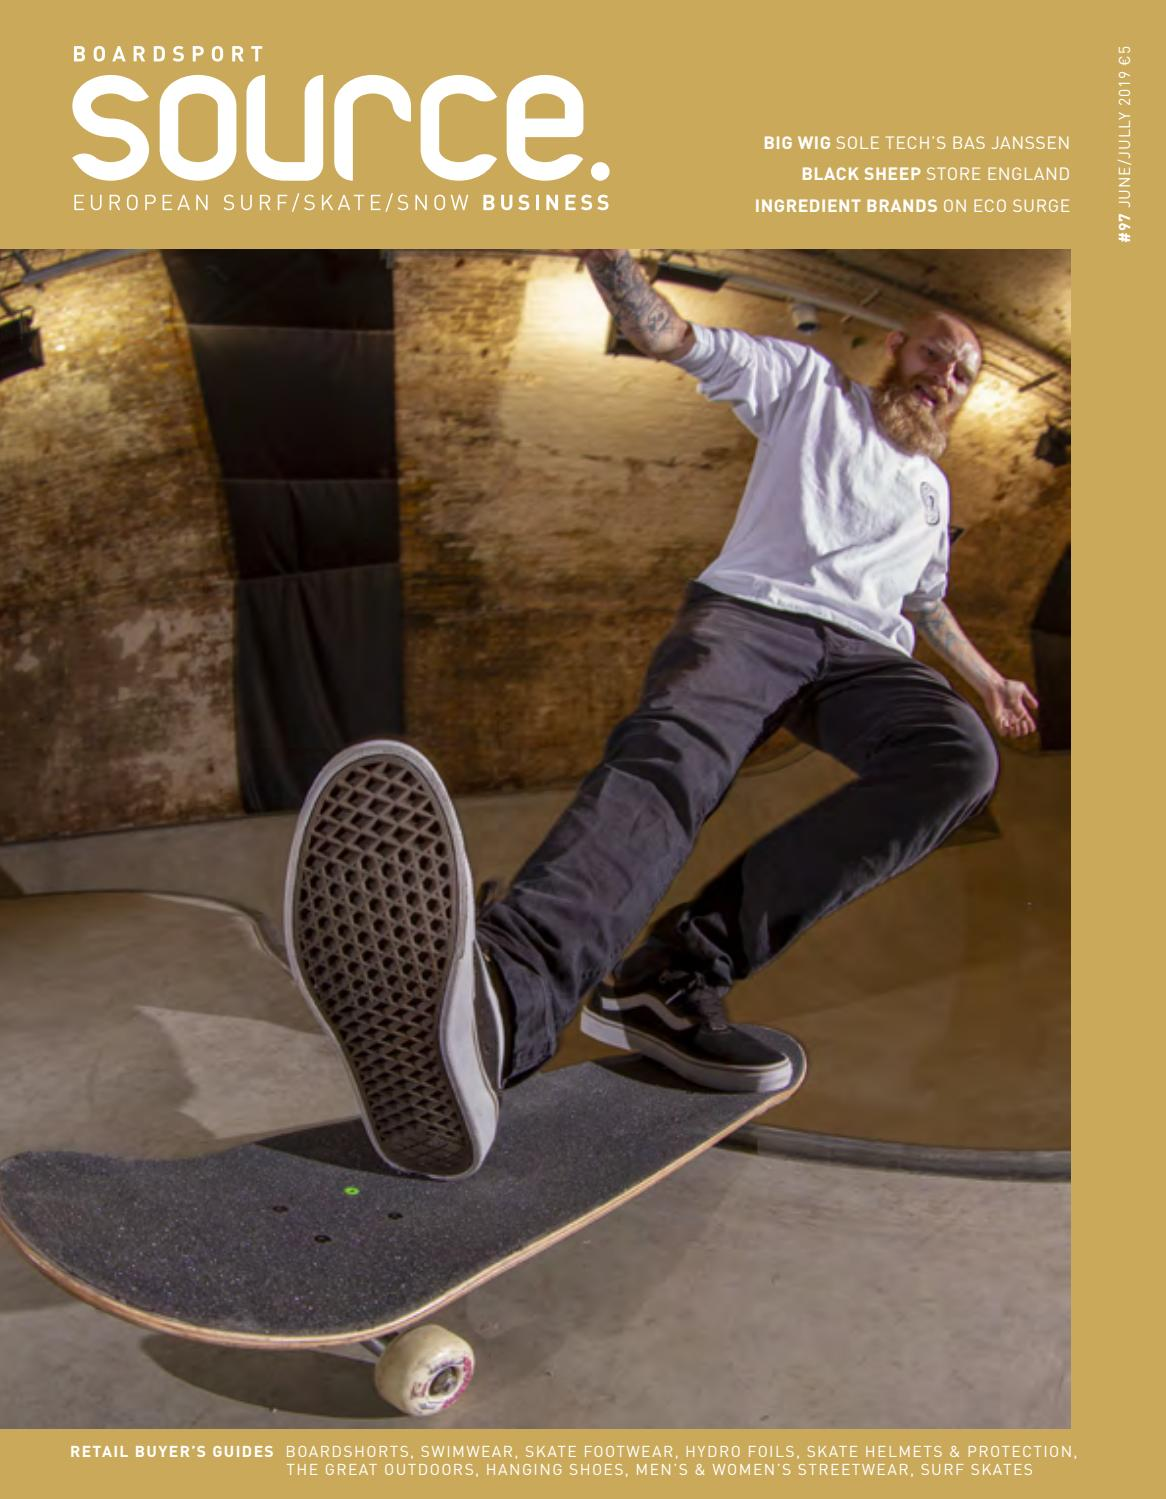 BoardSport Source, Issue 97, June July 2019 English by